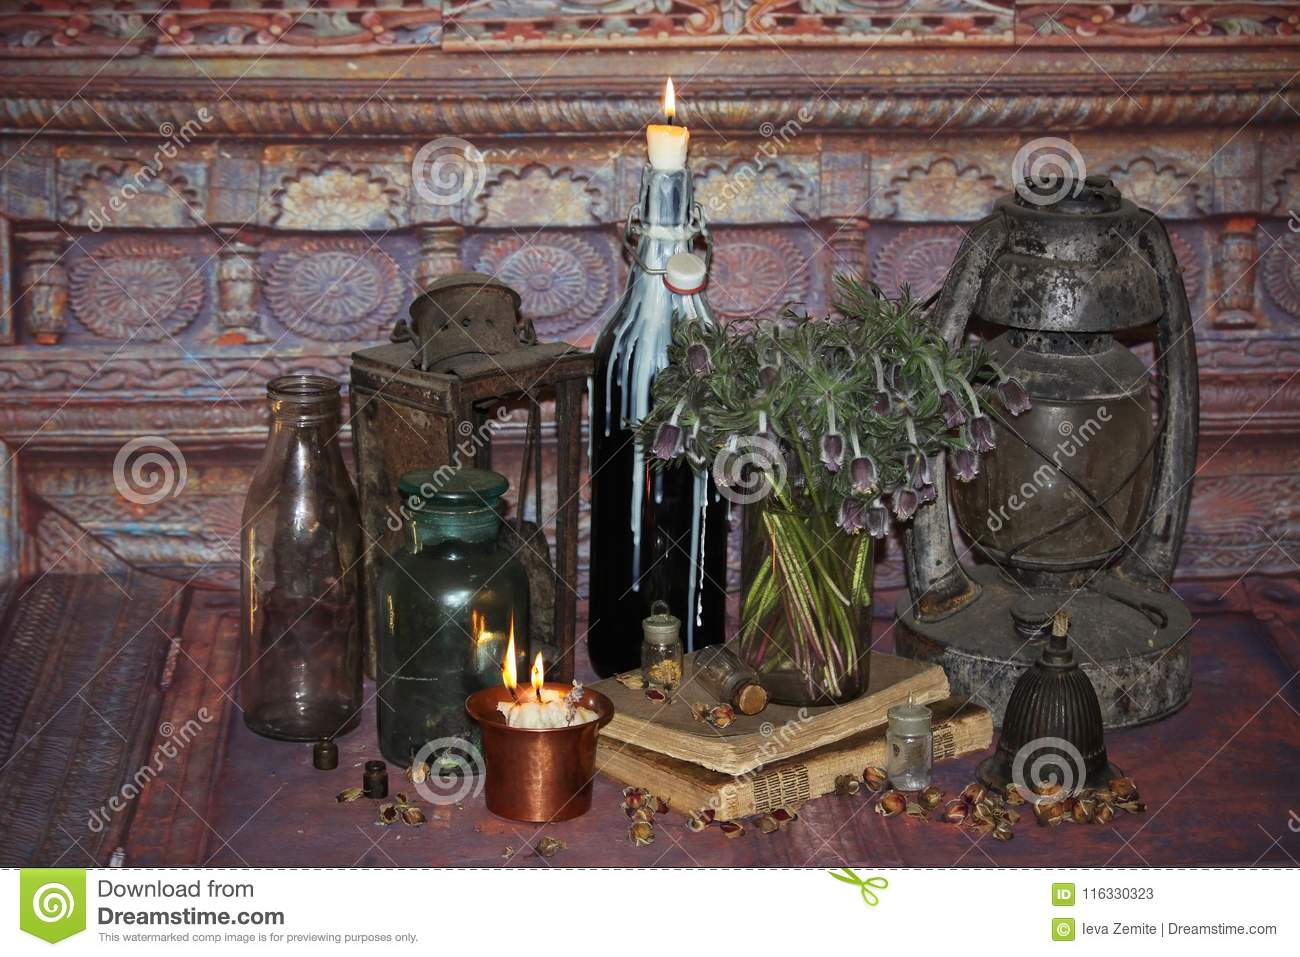 Black Magic Spells  Wiccan Spells And Herbs  Stock Image